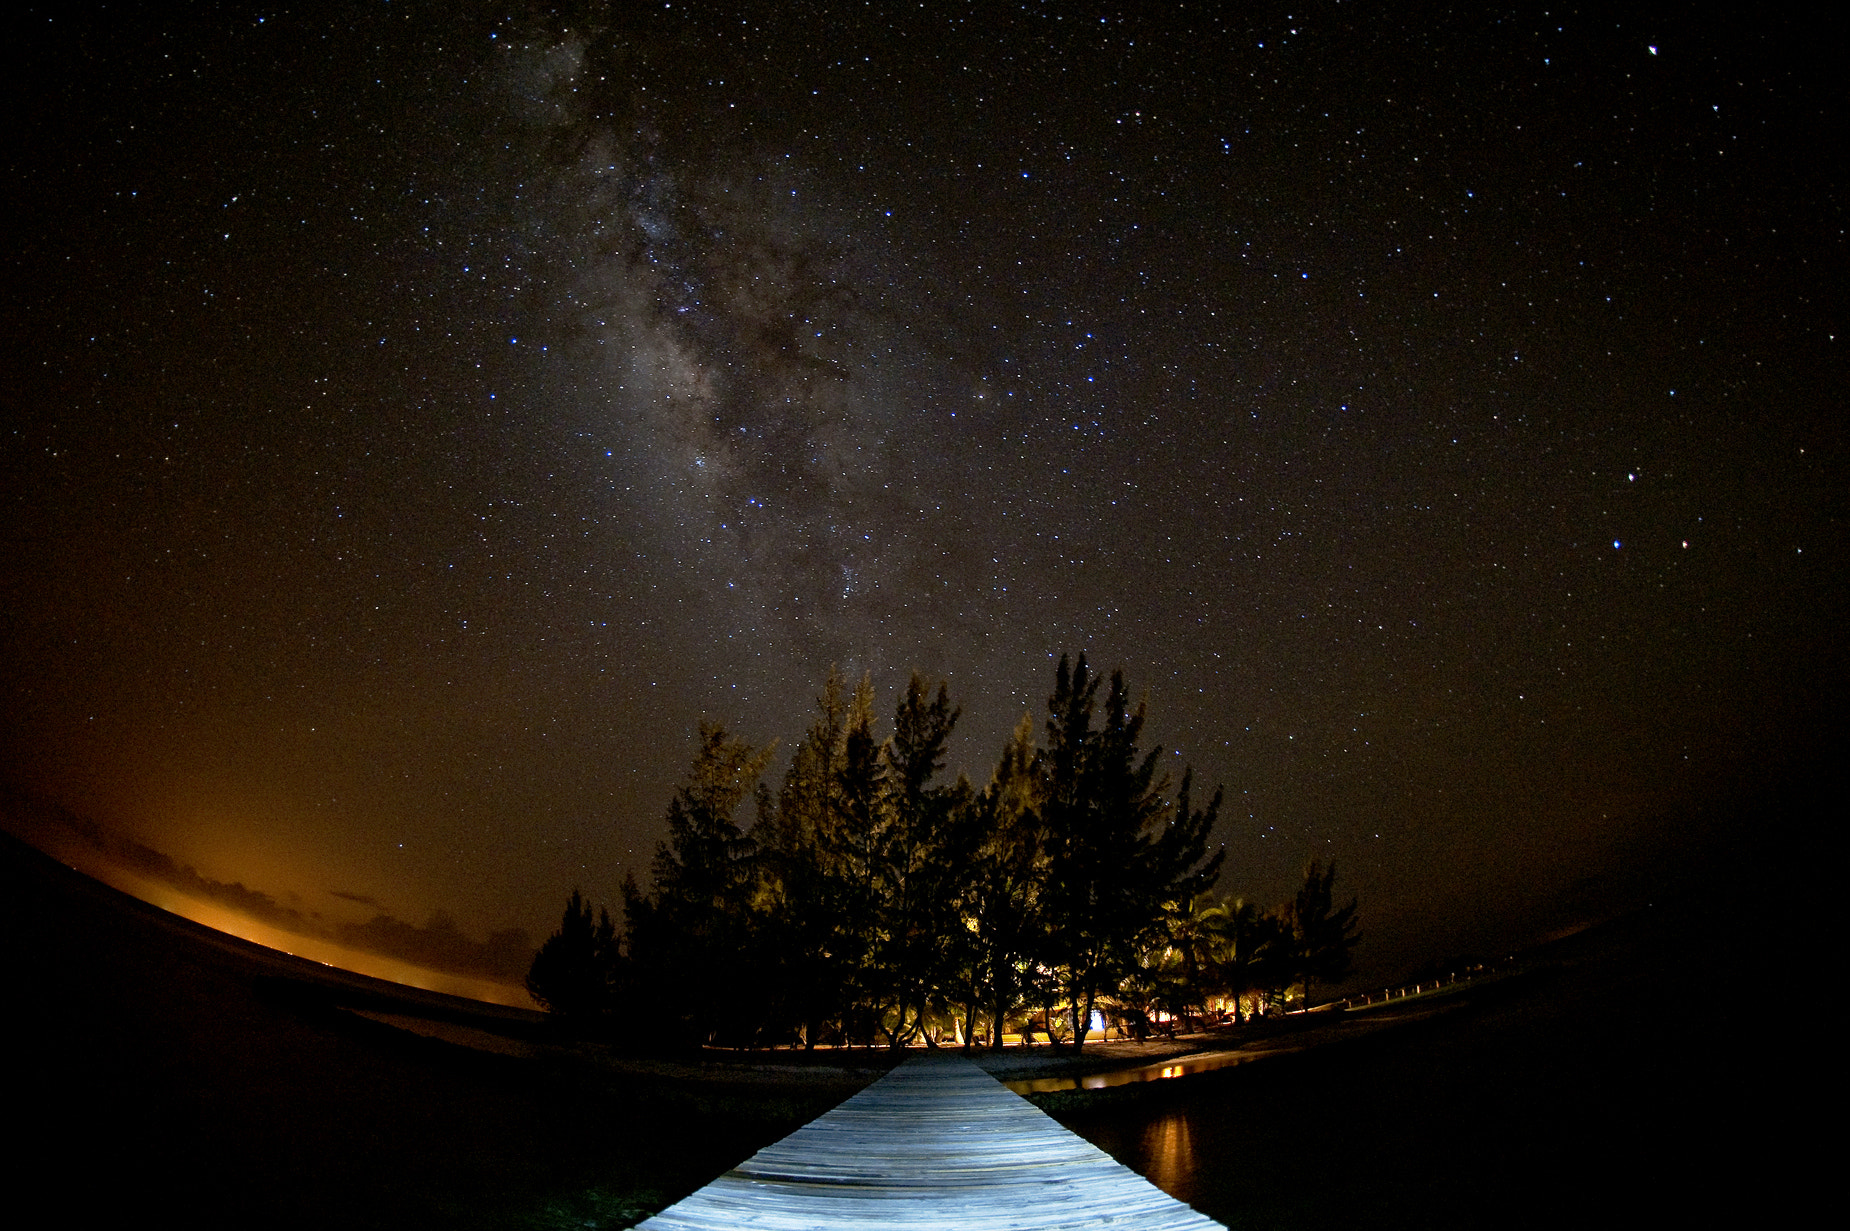 Photograph The Way over the Cay by JJ Marroquin on 500px